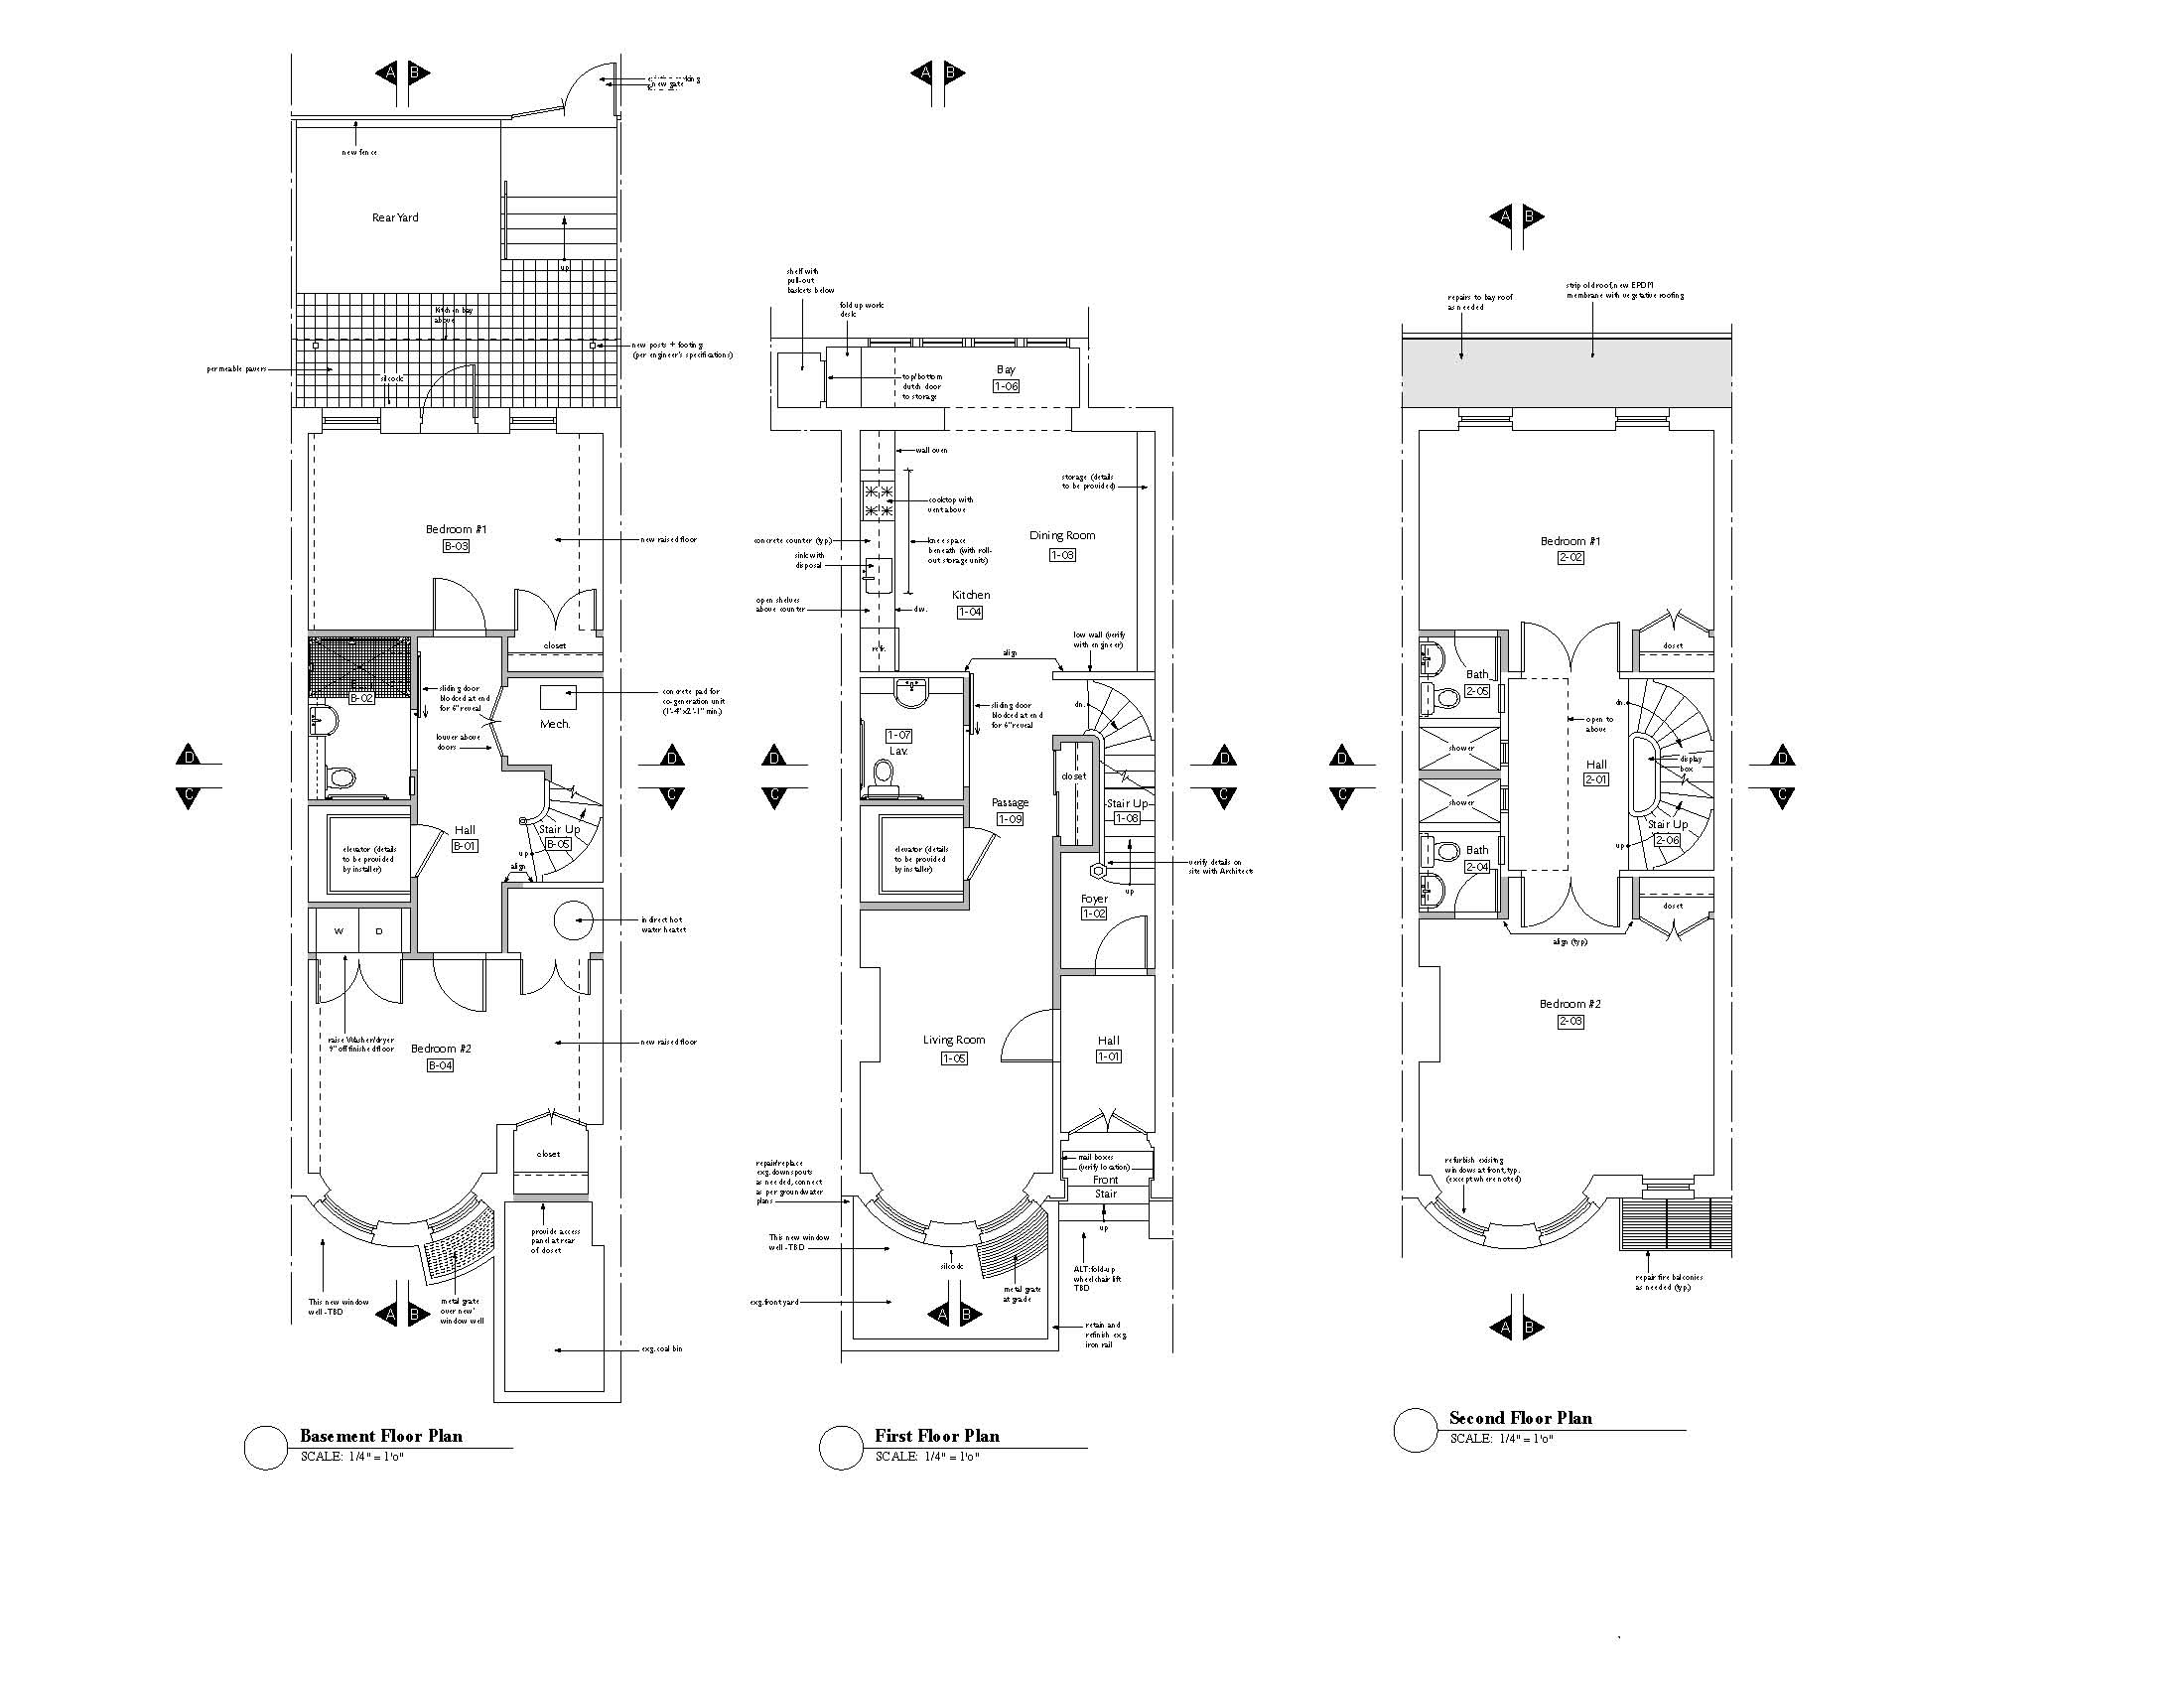 Plans  - Basement, 1st and 2nd